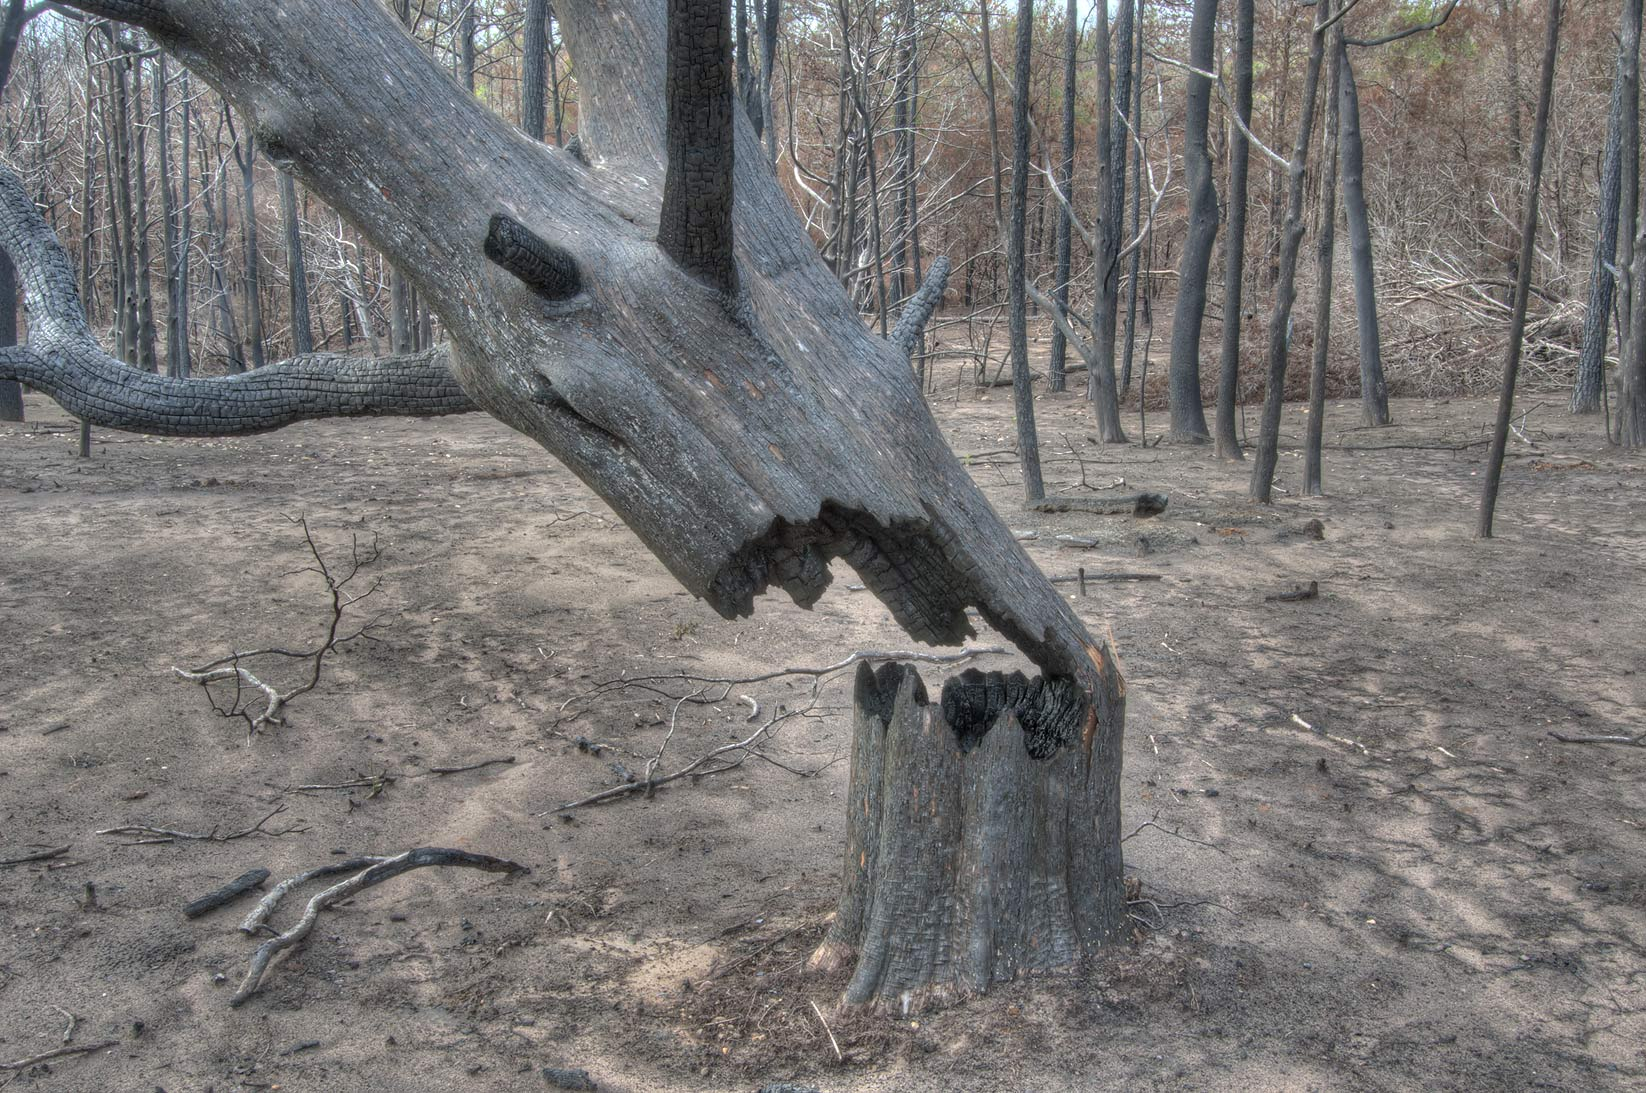 Tree trunk damaged by fire in Bastrop State Park. Bastrop, Texas